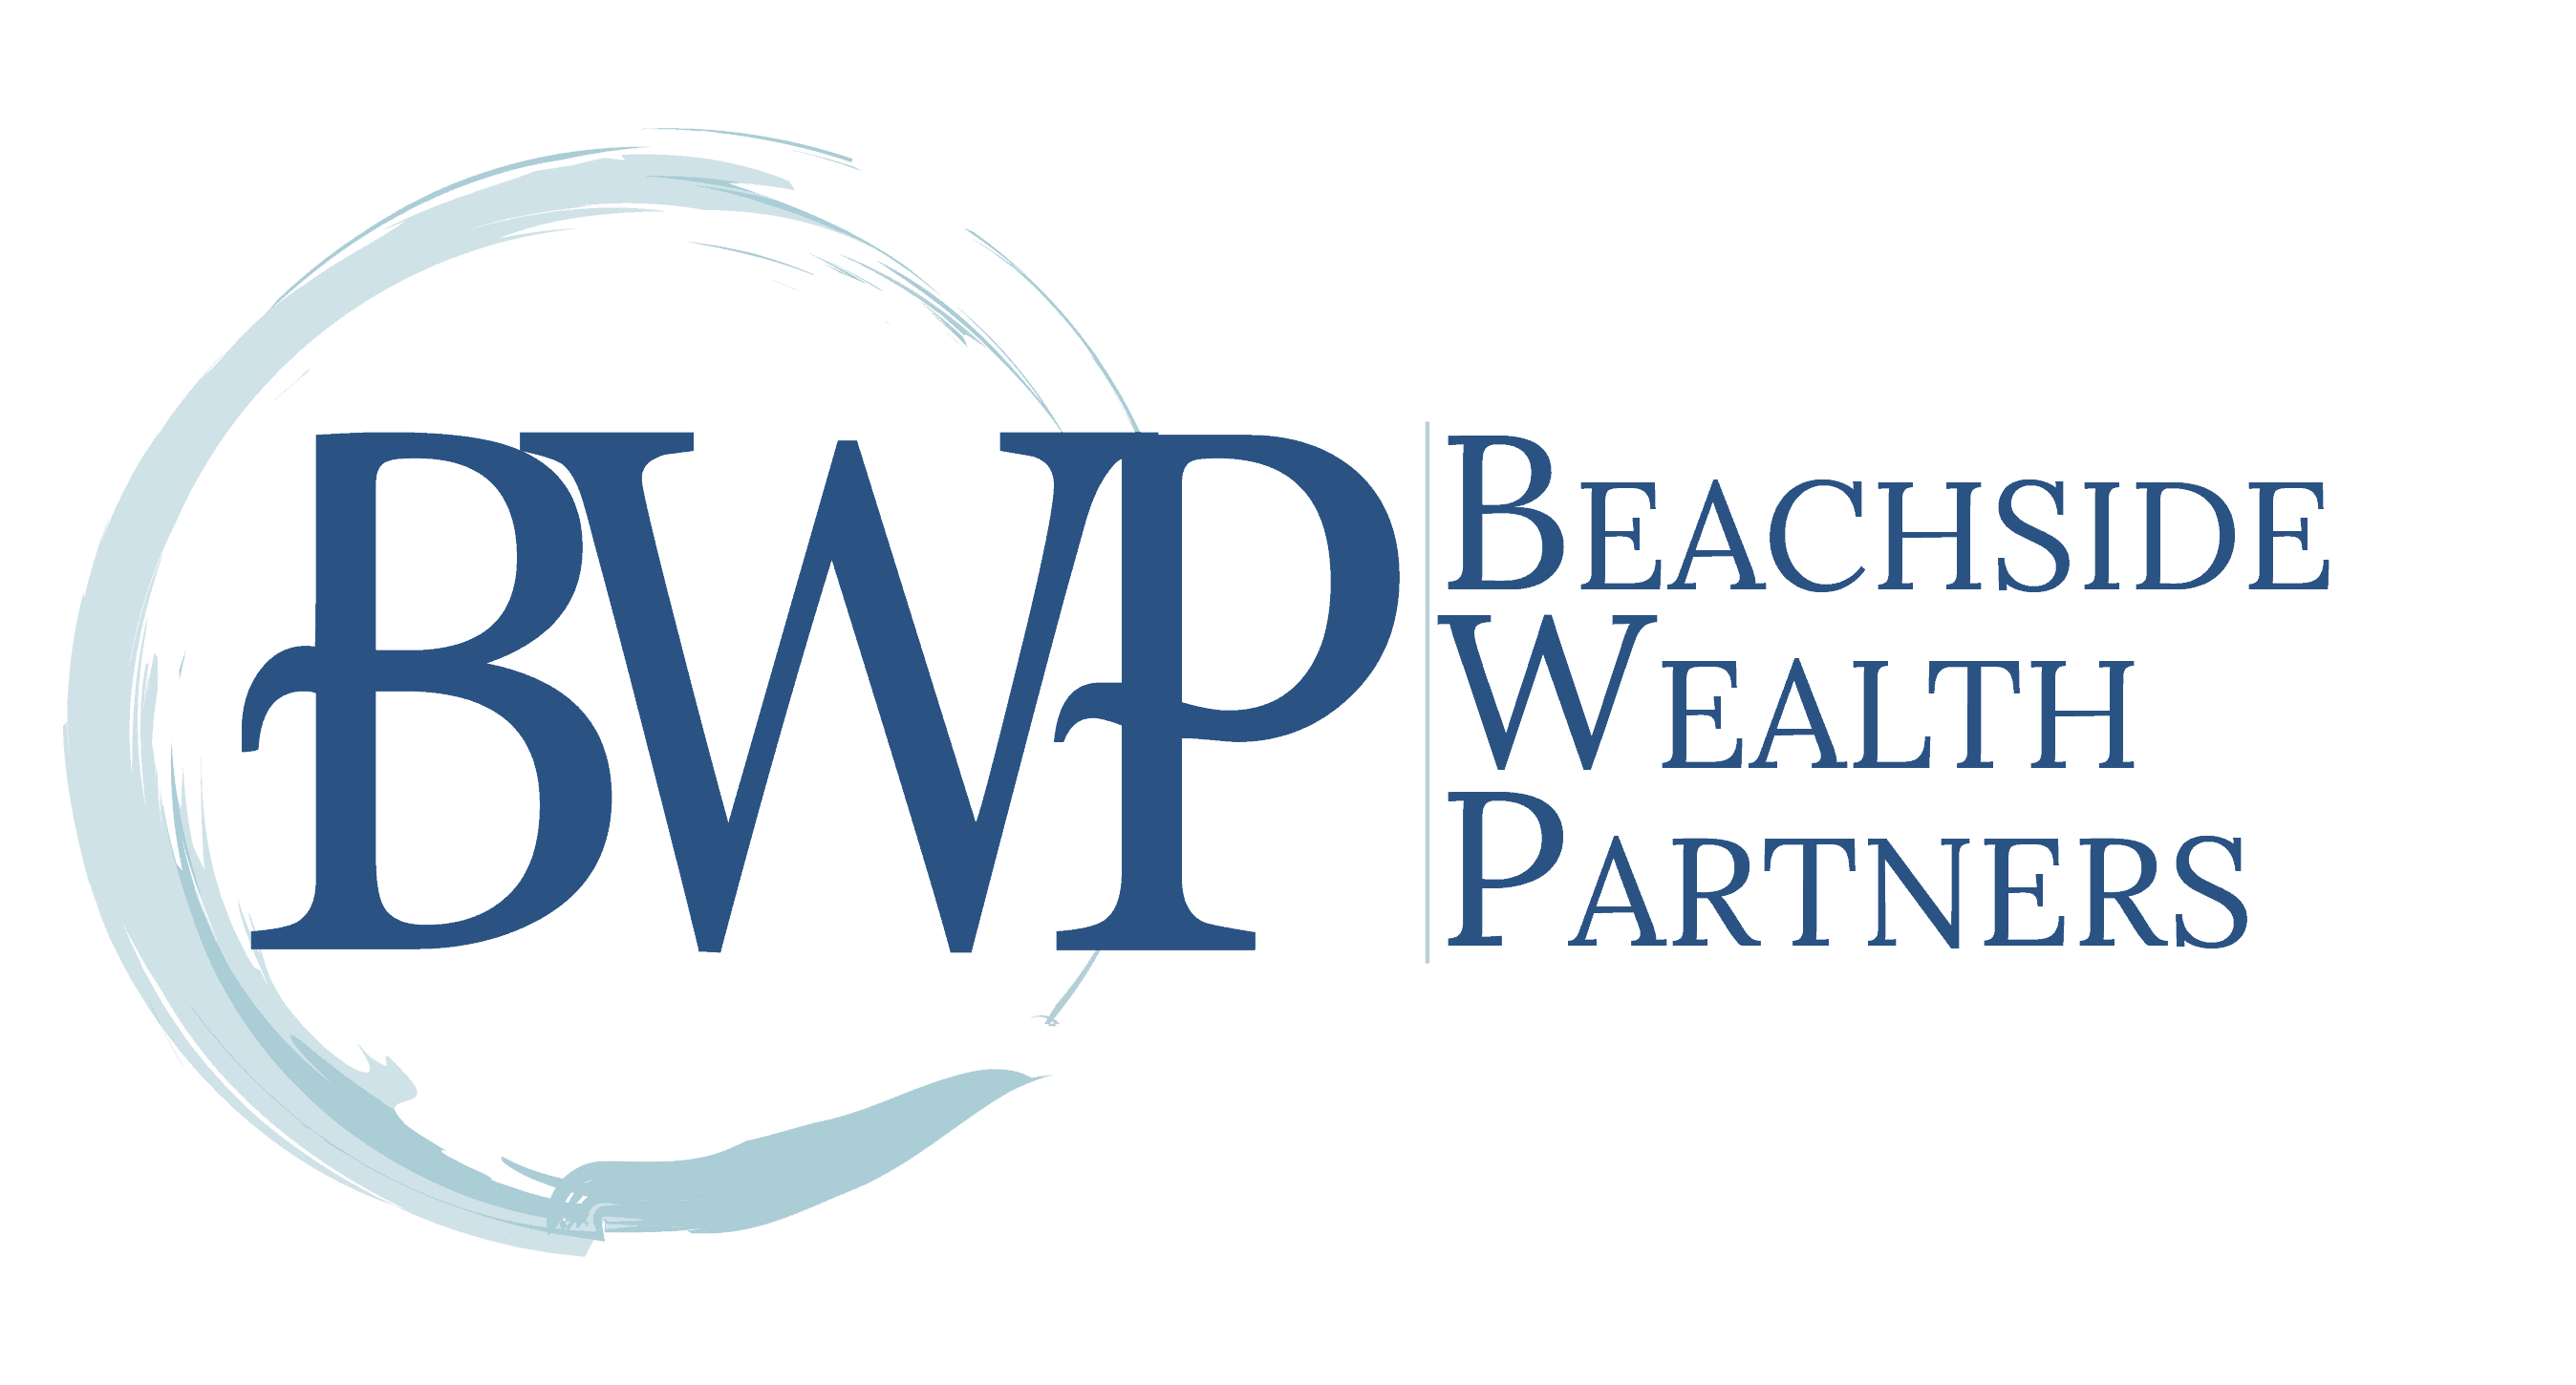 Beaches Wealth Partners logl